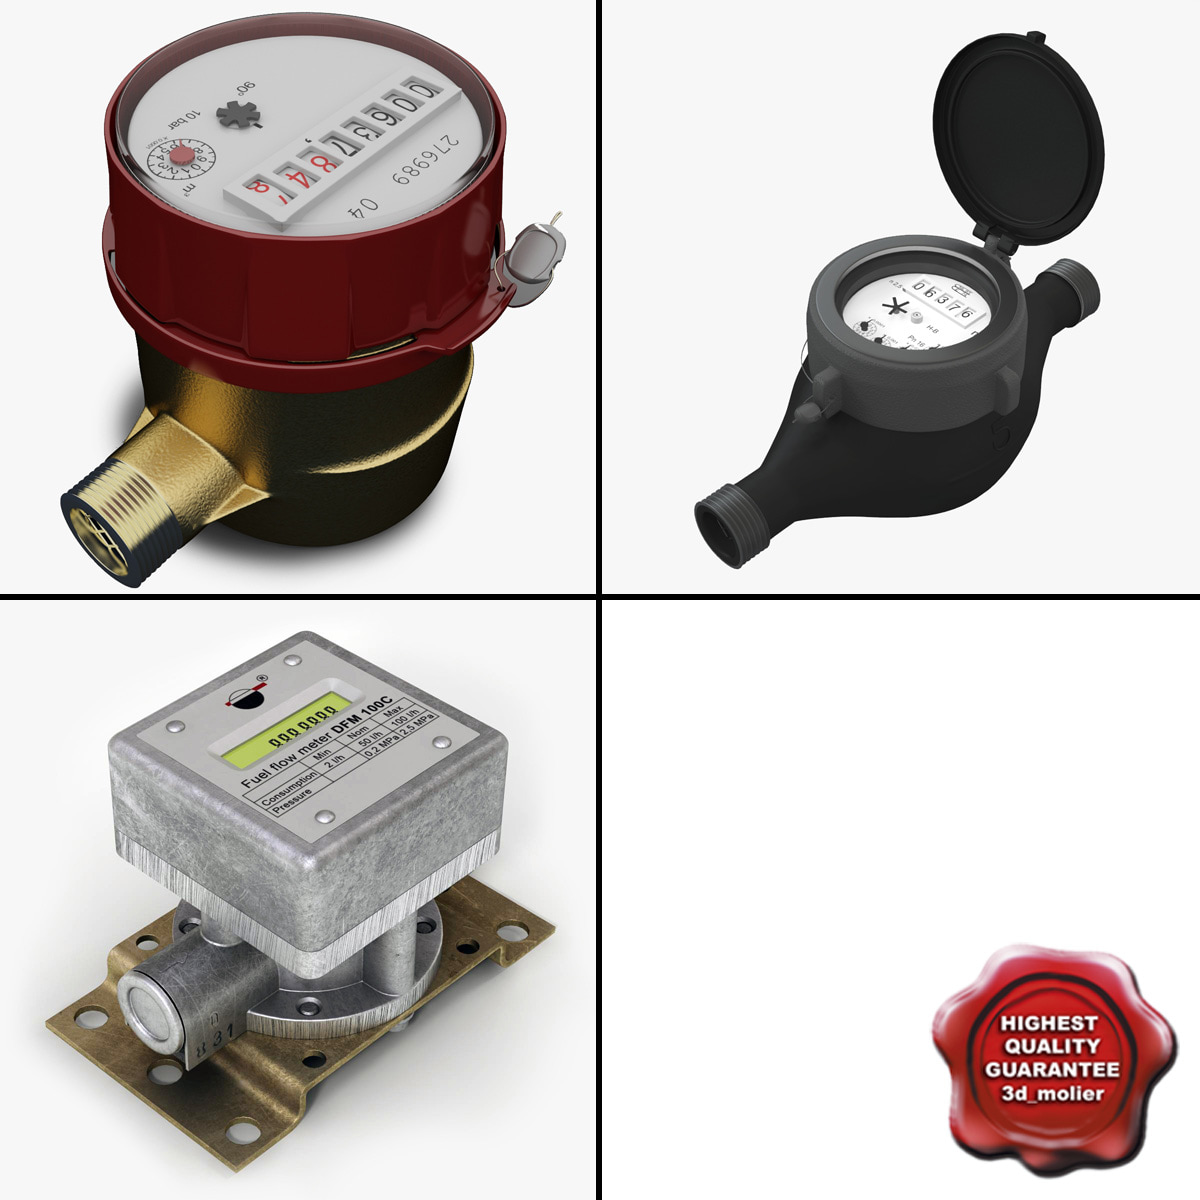 Water_Meters_Collection_000.jpg